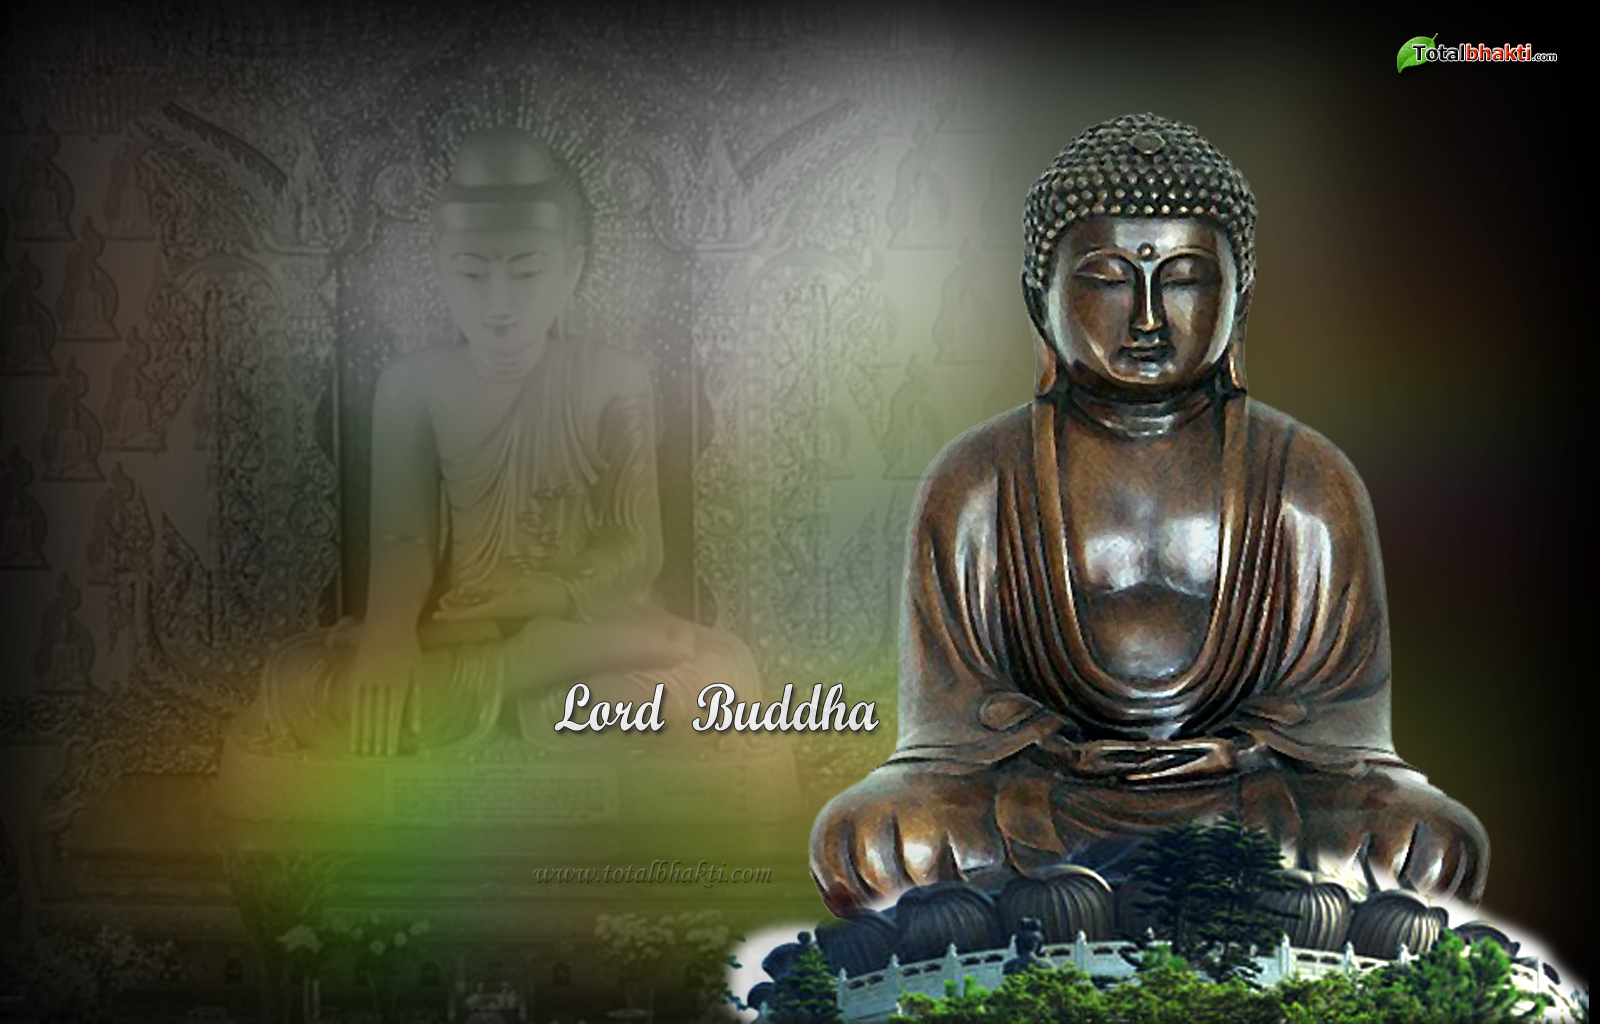 High Definition Wallpapers: Lord Buddha Wallpaper